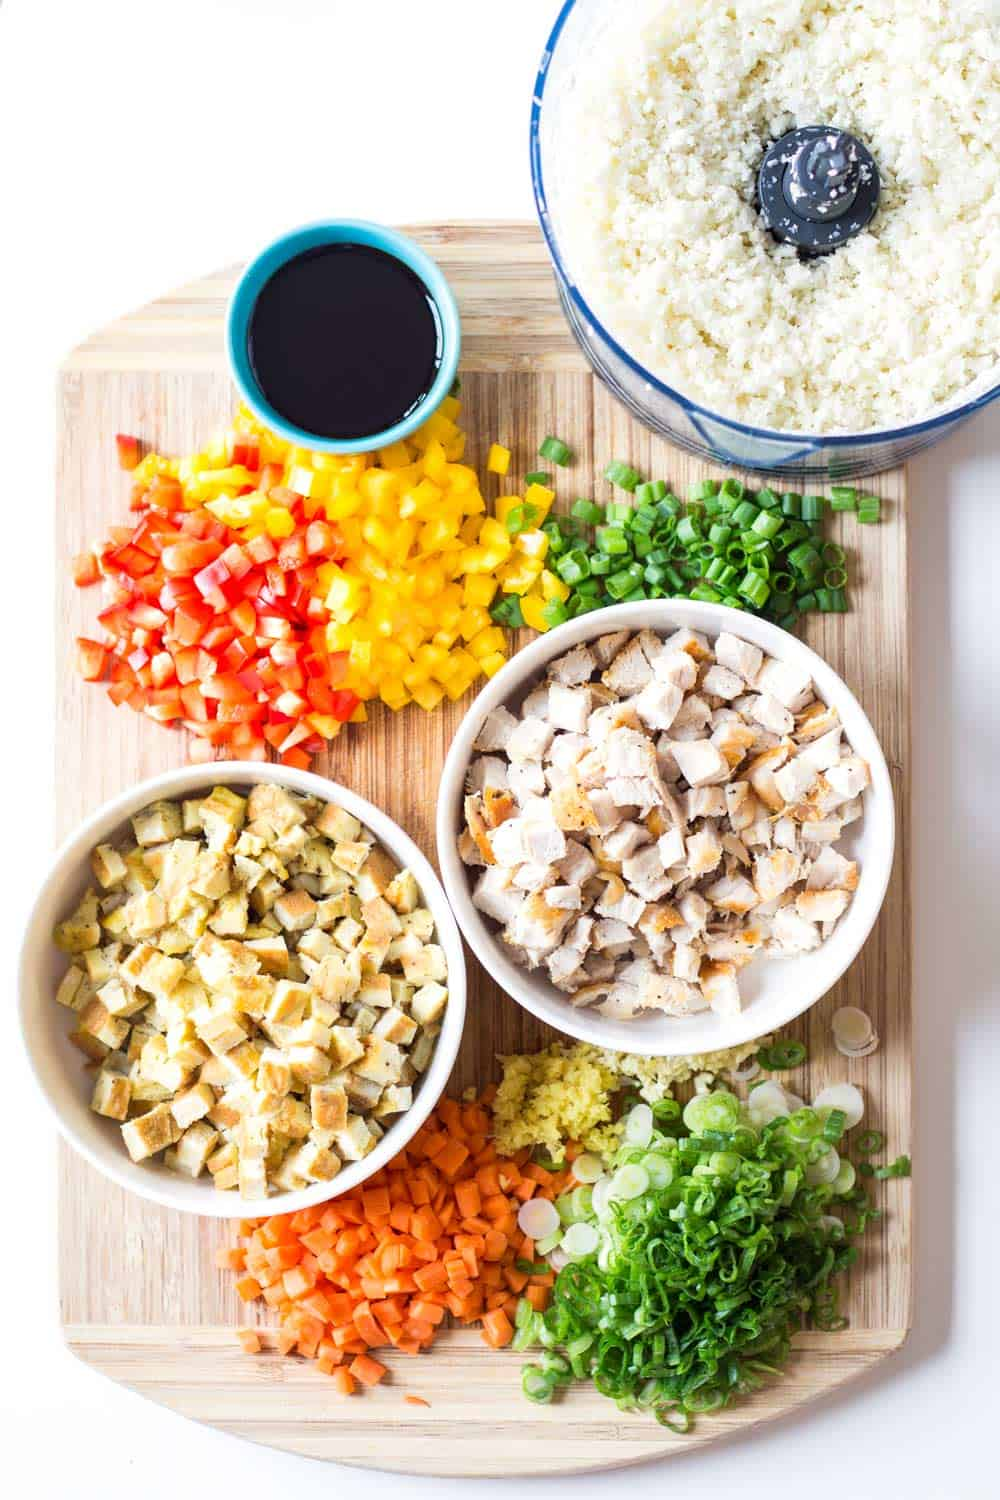 Fresh chopped ingredients for Cauliflower Fried Rice laid out on a chopping board.